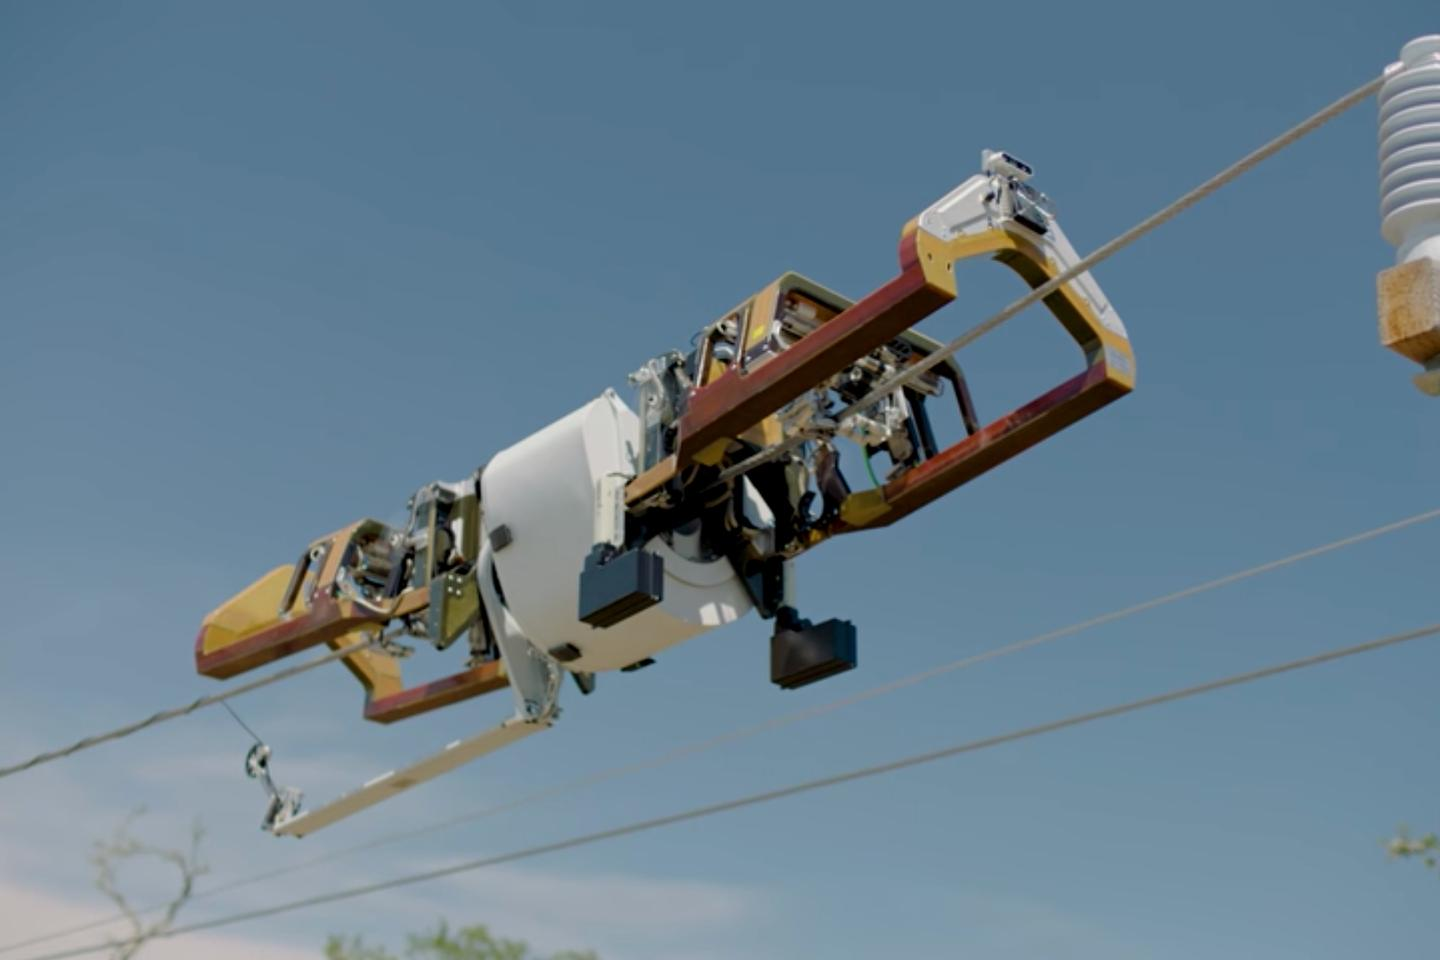 The Bombyx robot's main body remains level to the ground, while an internal mechanism winds a payload of fiber optic cable around the power line